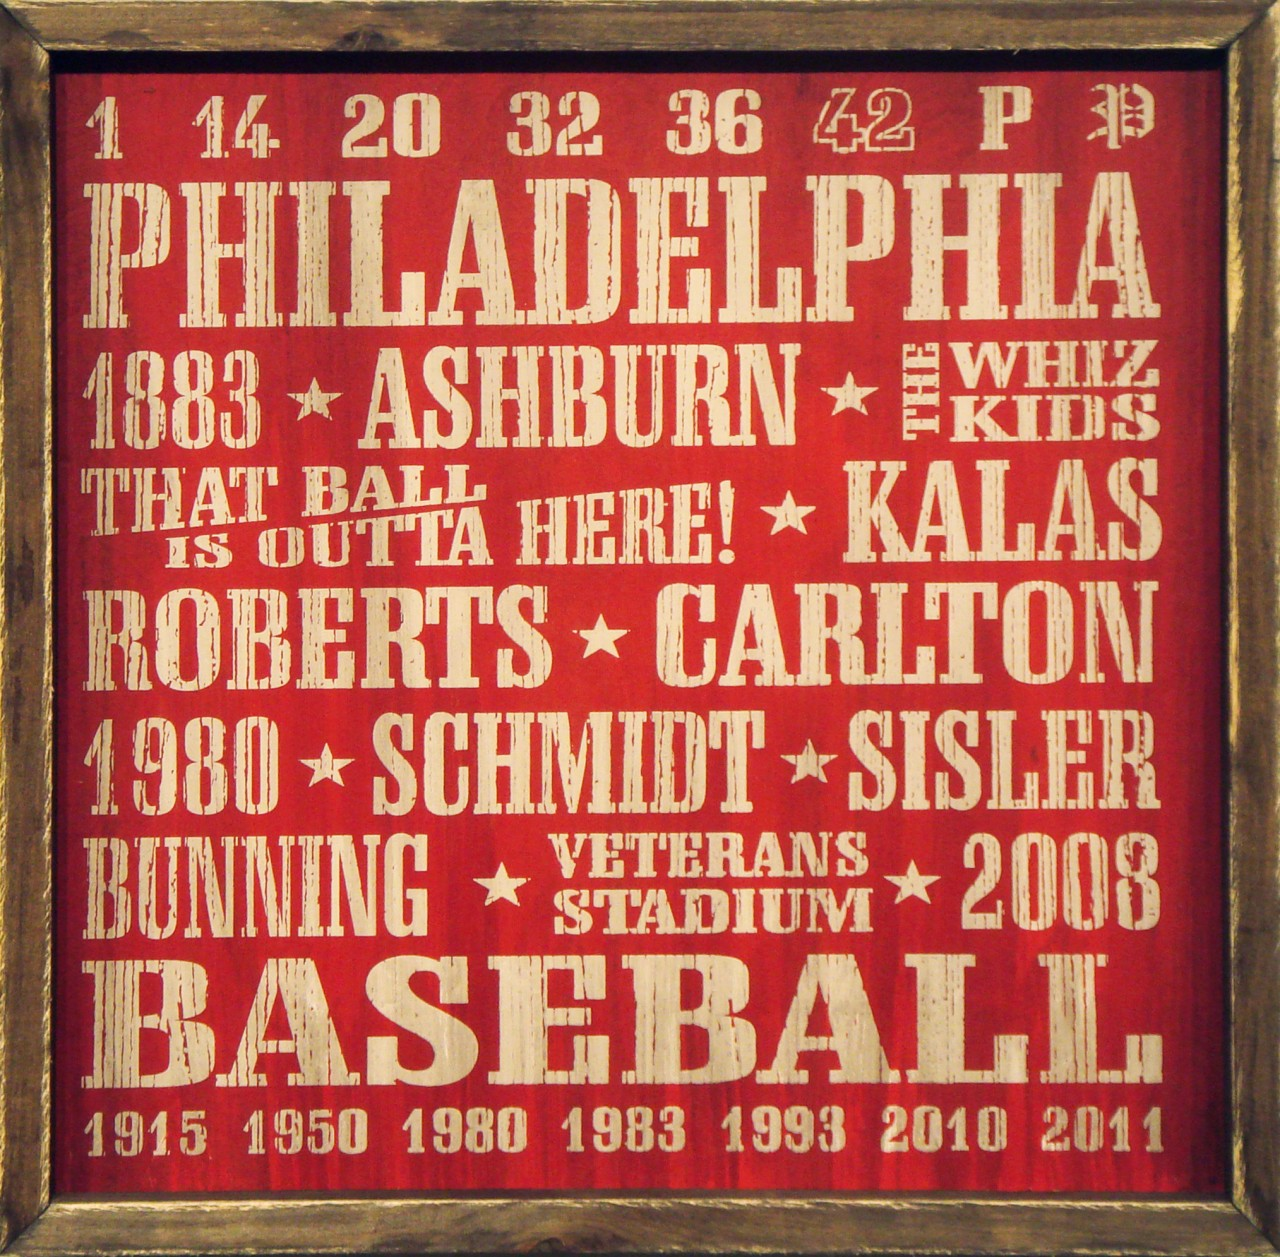 philly-baseball-philies-88381-zoom.jpg